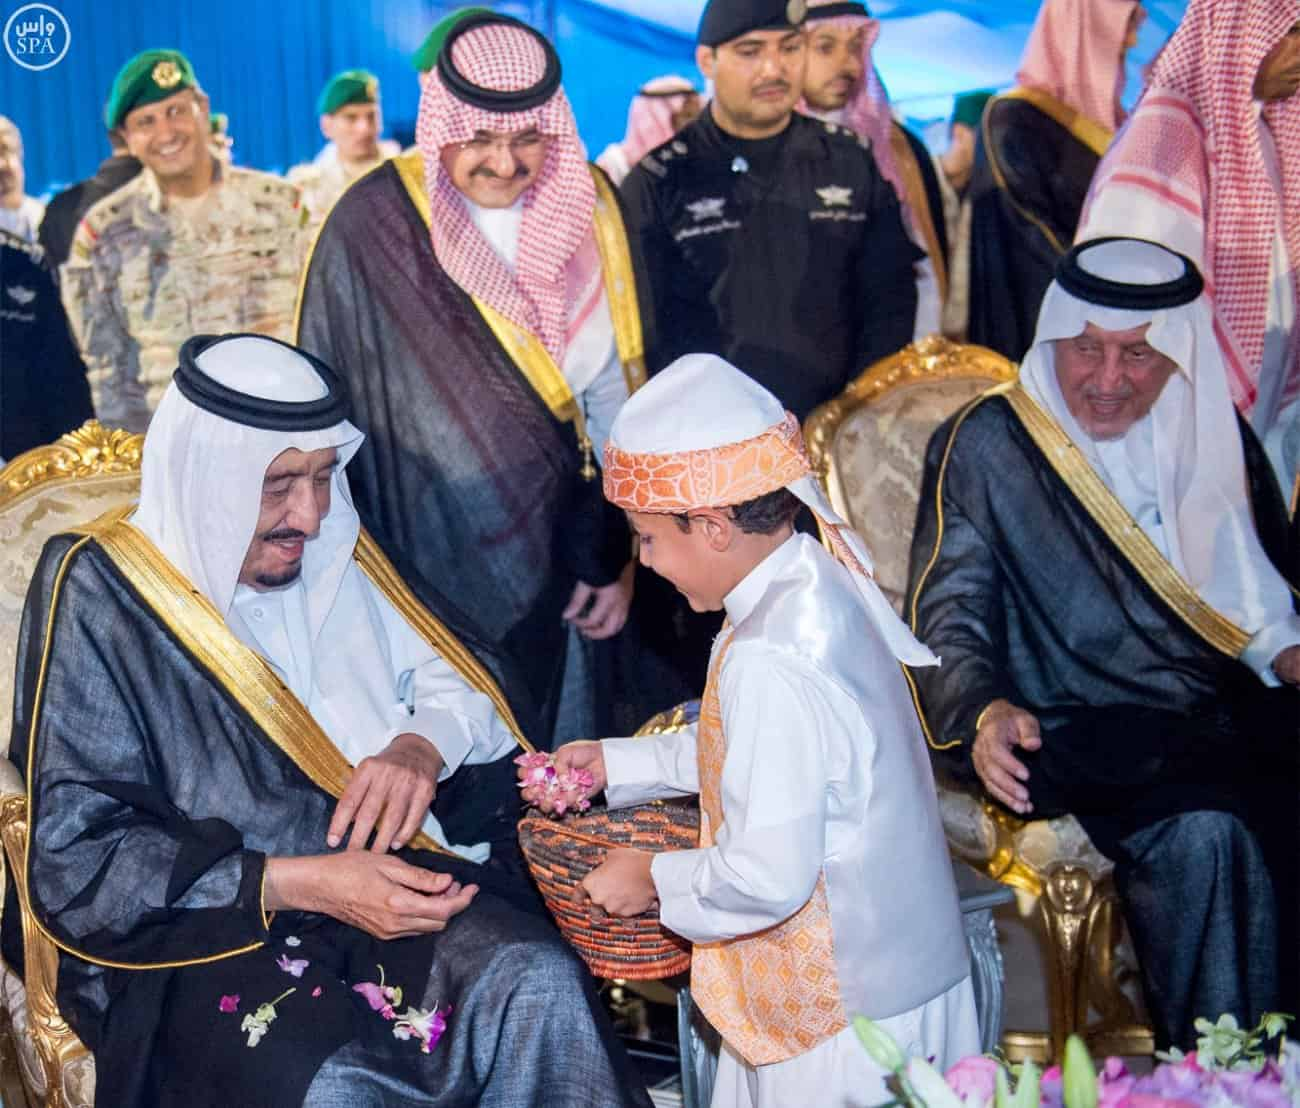 King Salman and the Crown Prince at celebrations (Photo SPA)